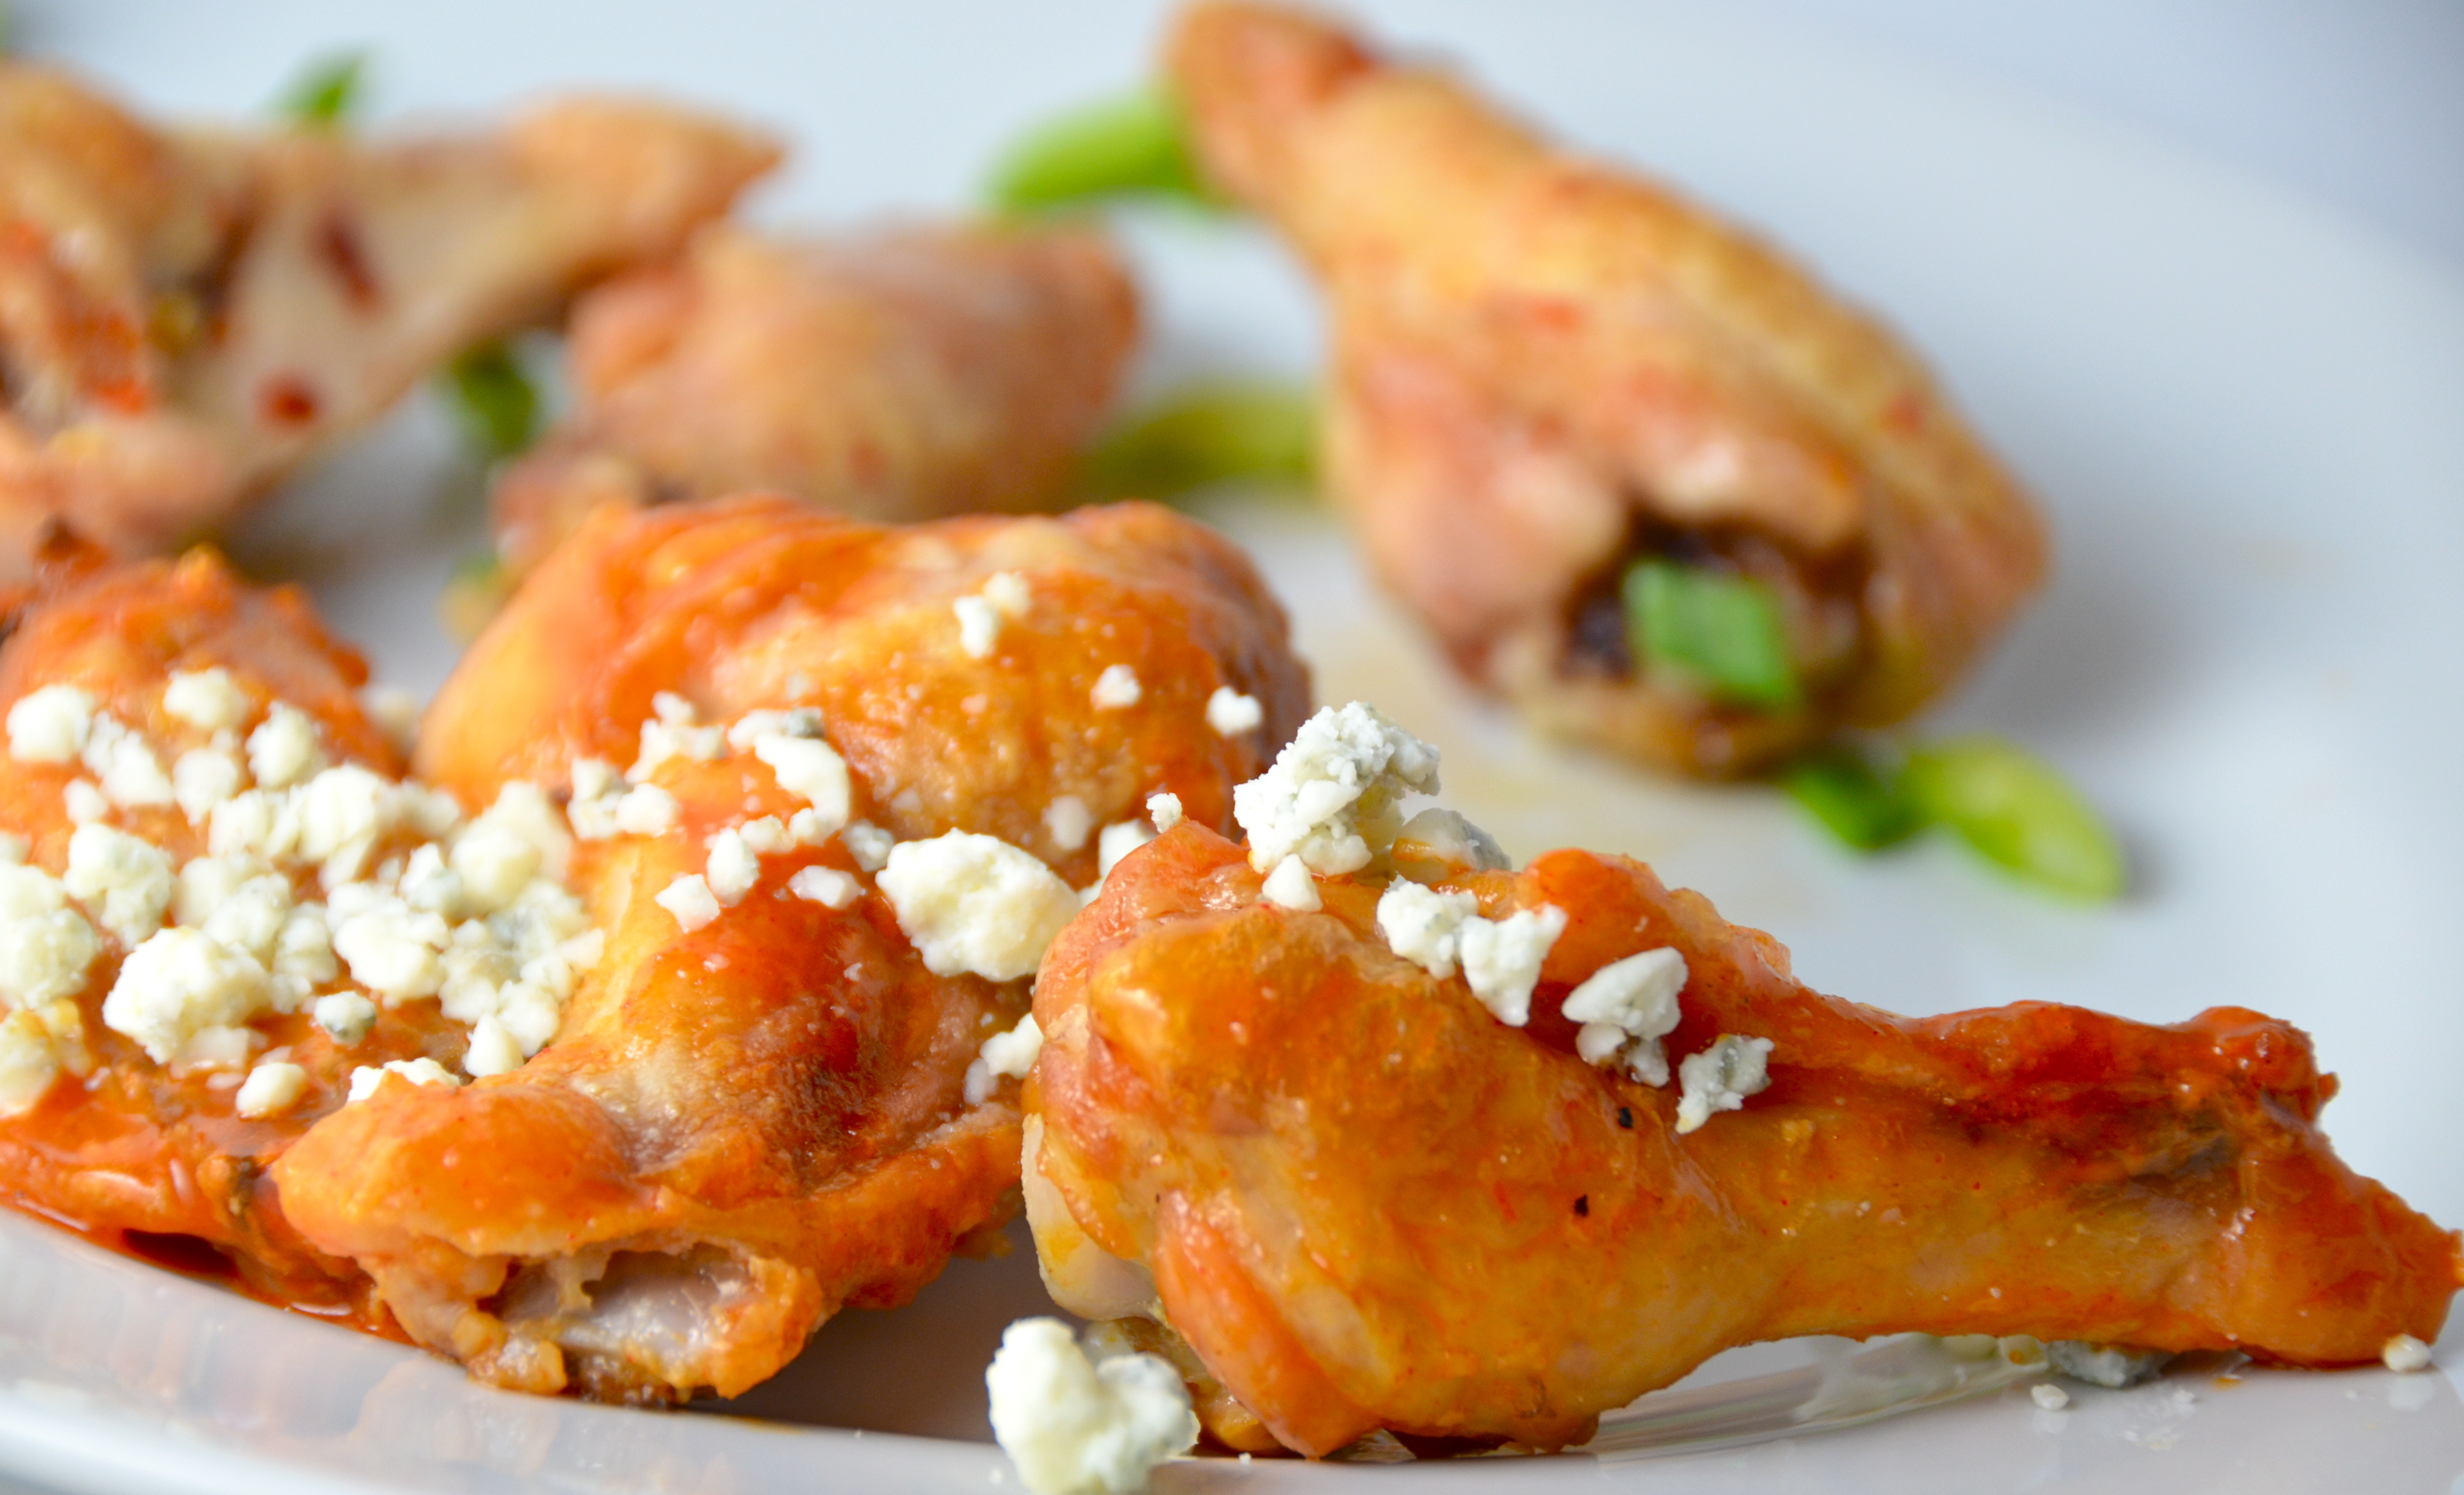 how to cook chicken wing sin an oven